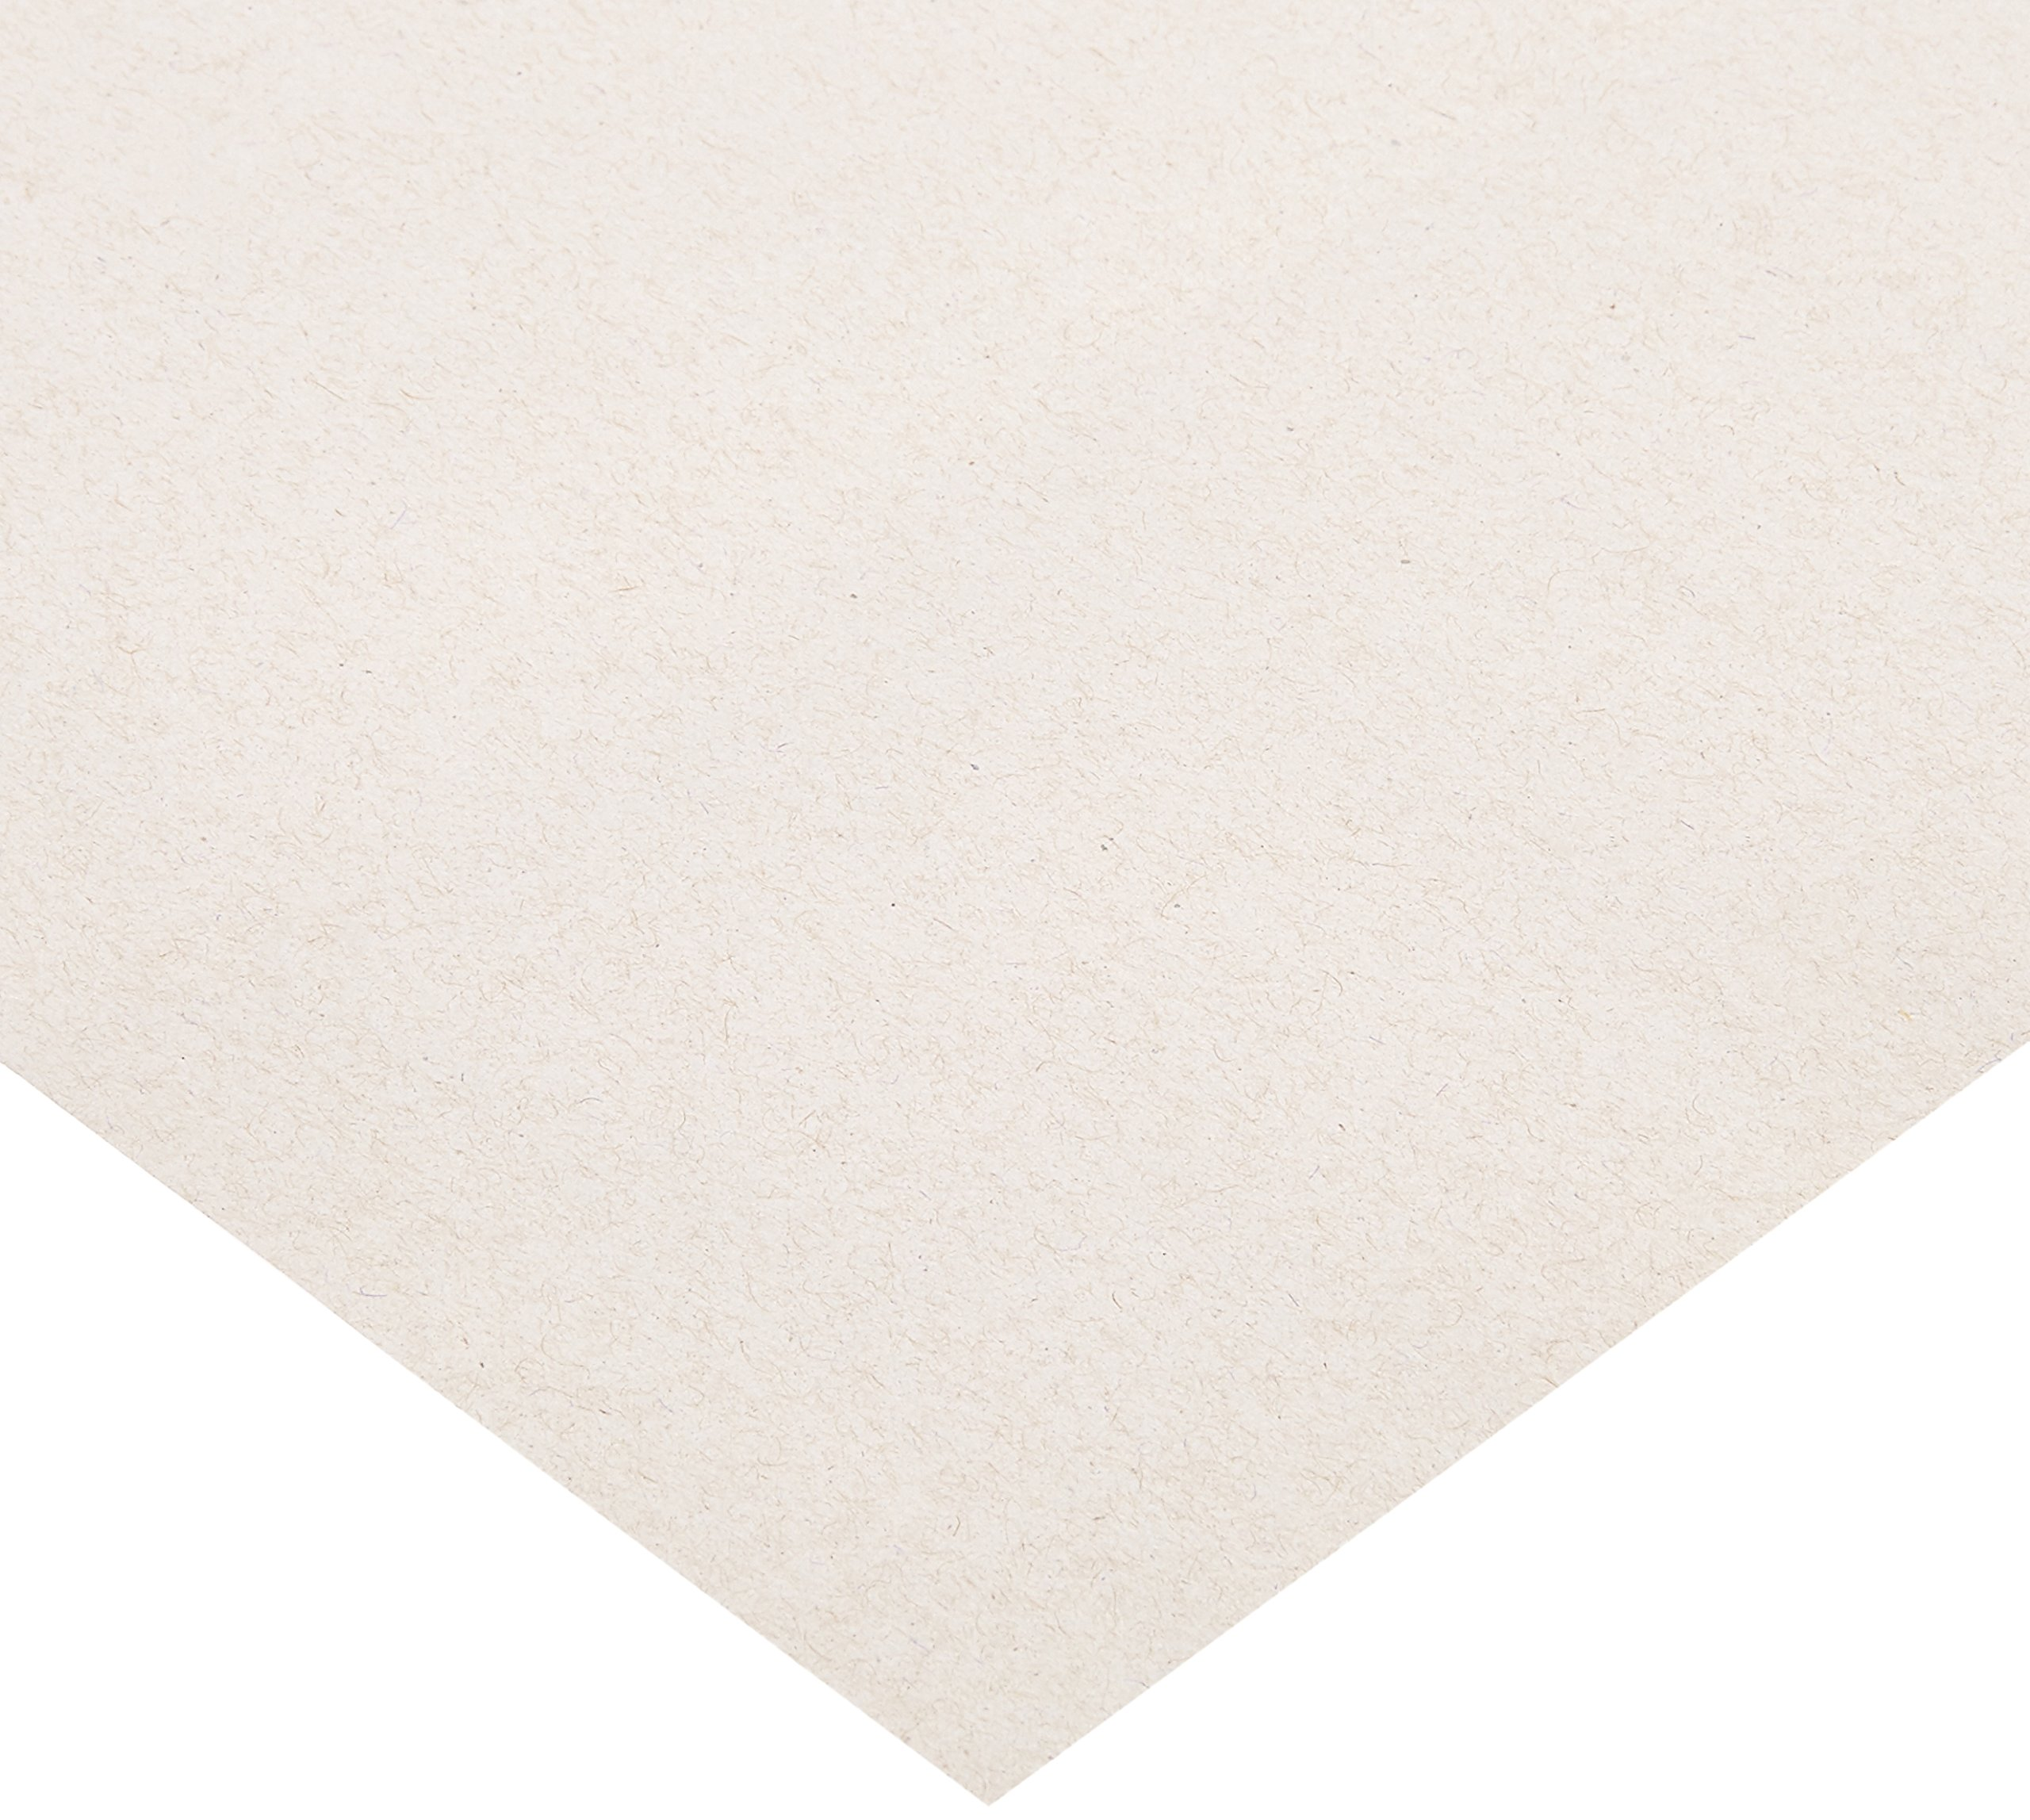 The Boxery NP24X36-10 24 x 36 10lbs. Feet Packing Paper